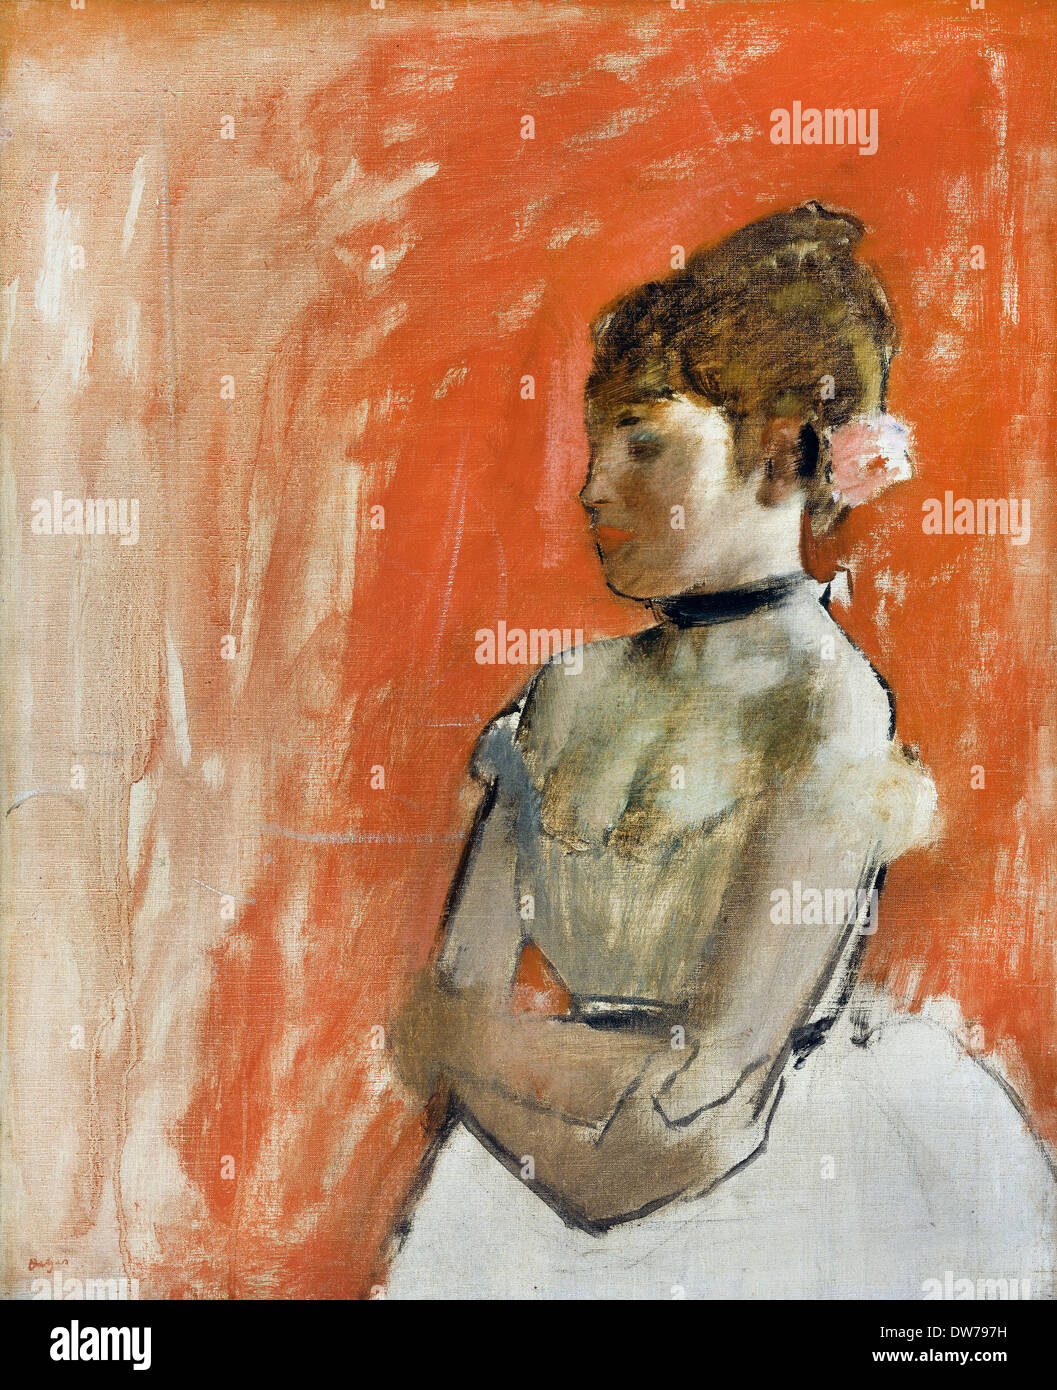 Edgar Degas, Ballet Dancer with Arms Crossed. Circa 1872. Oil on canvas. Museum of Fine Arts Boston, USA. - Stock Image